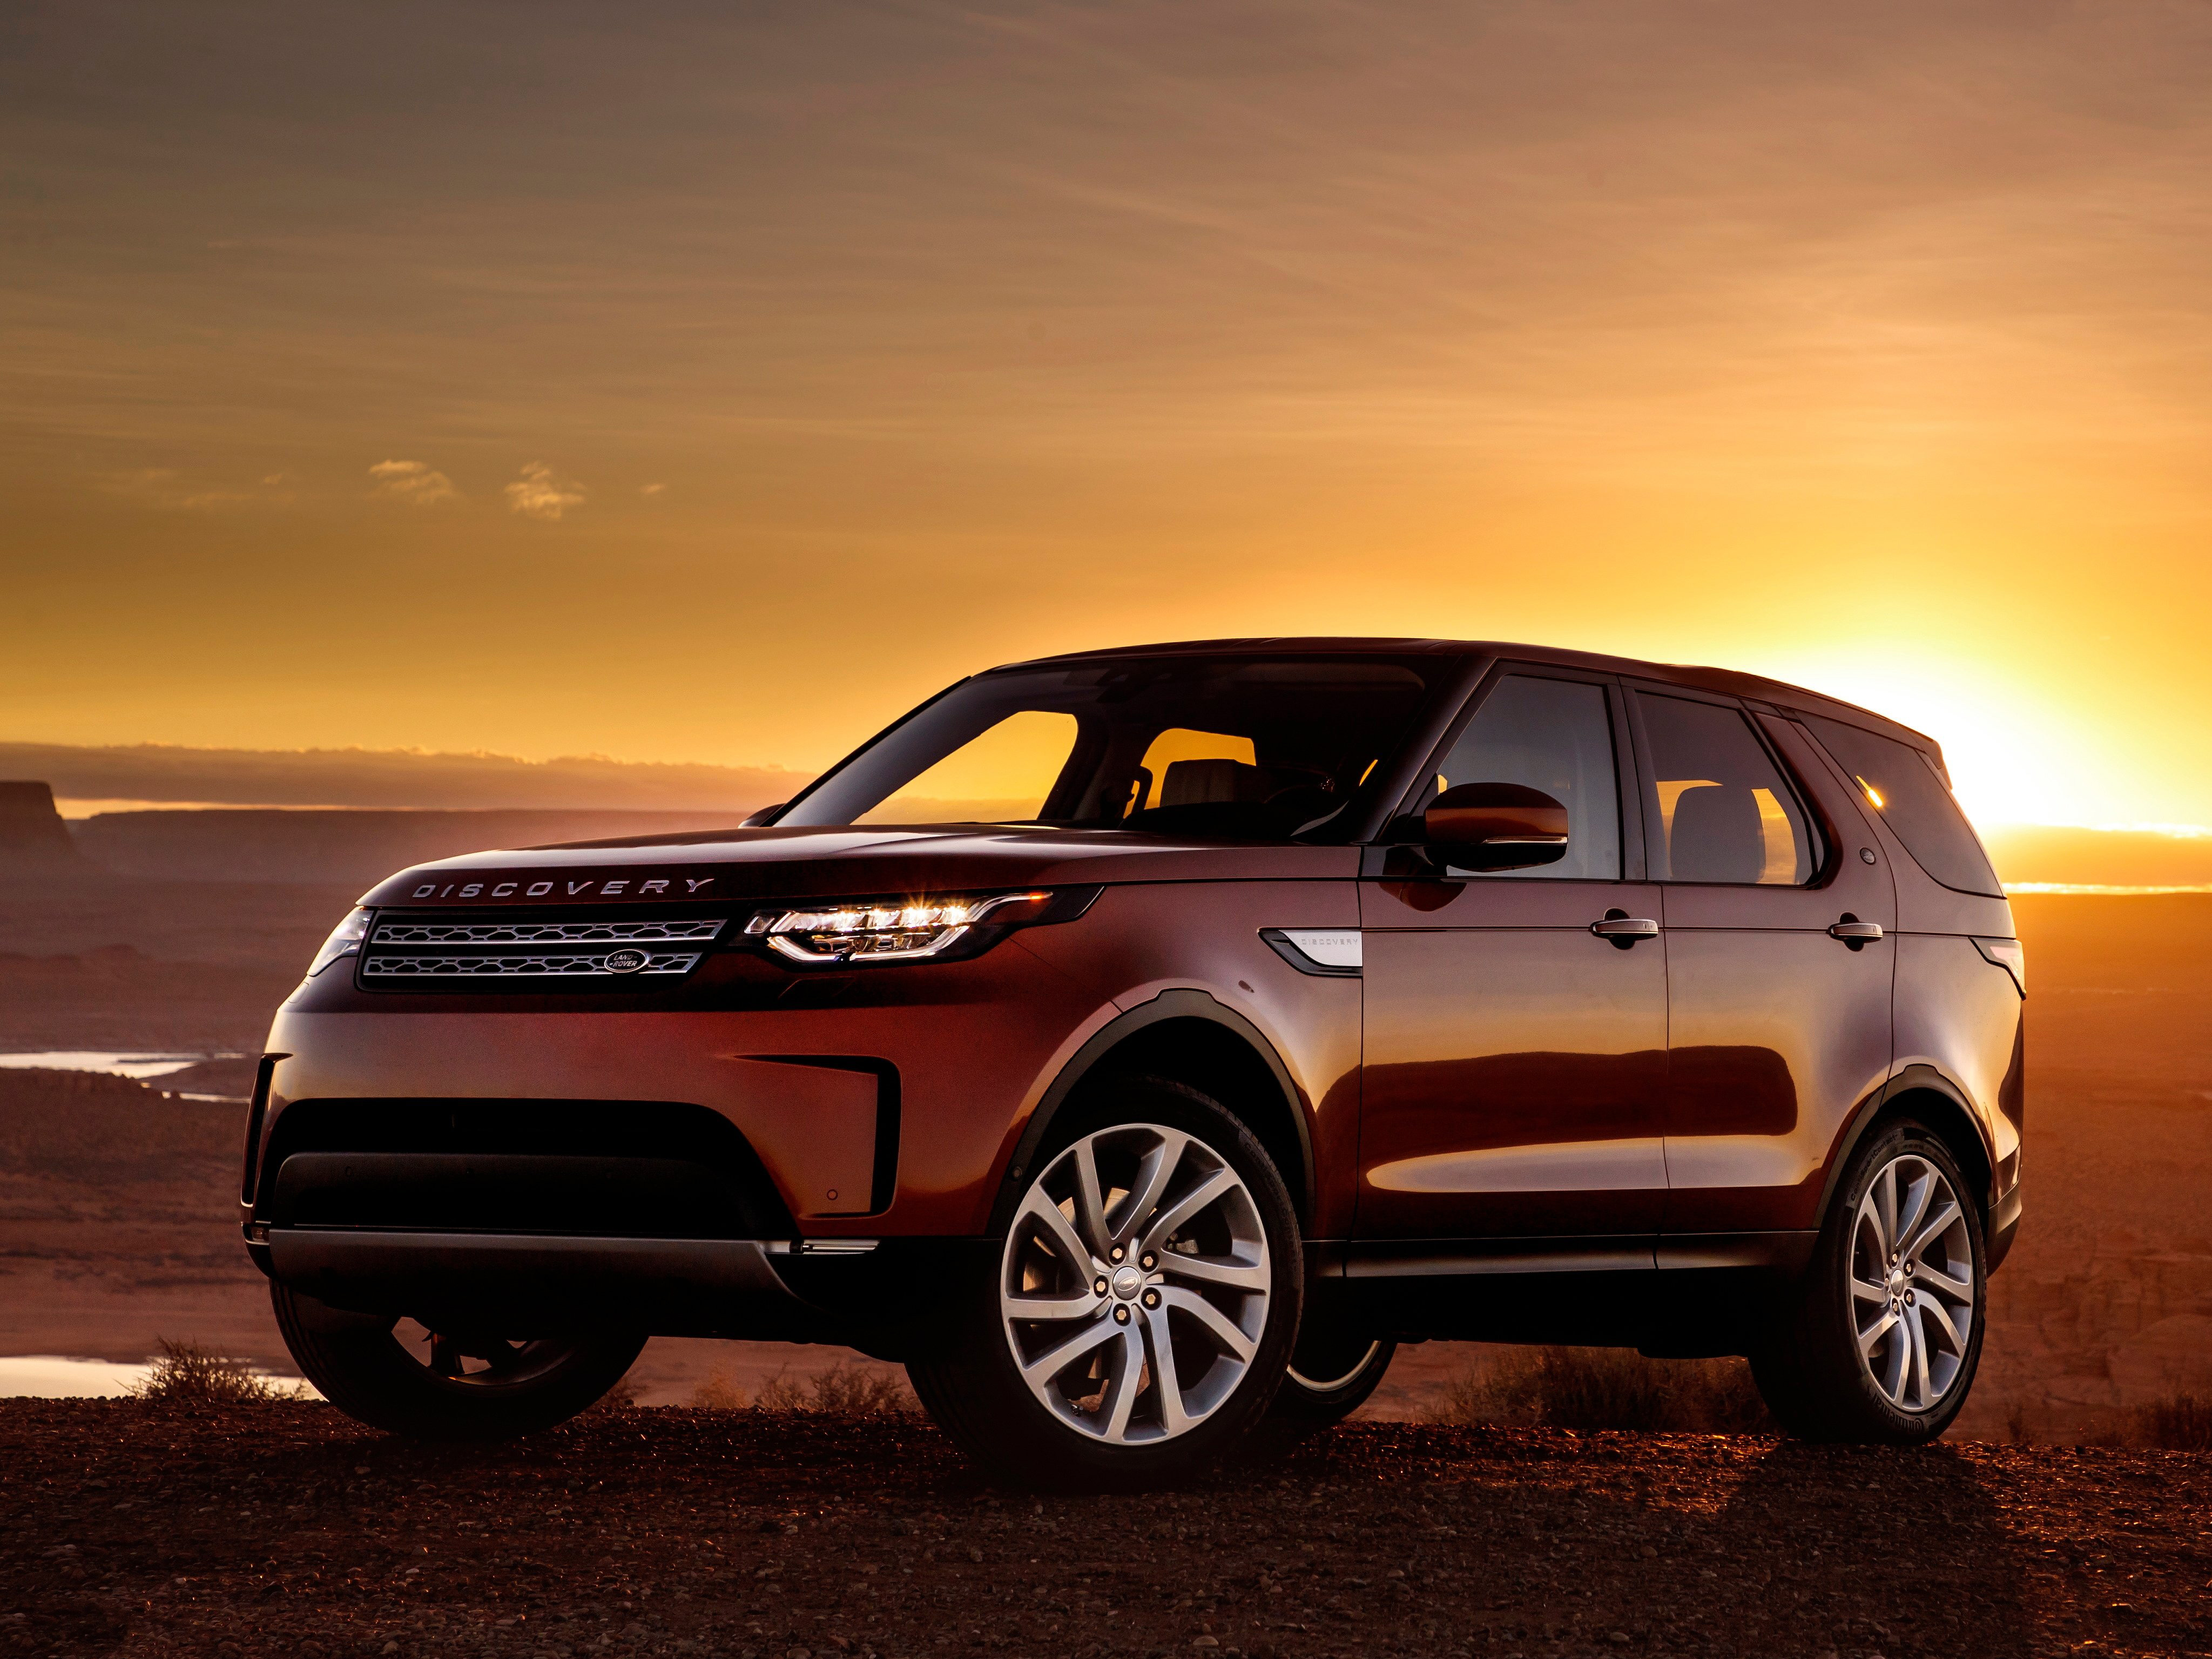 2017 land rover discovery hd cars 4k wallpapers images backgrounds photos and pictures. Black Bedroom Furniture Sets. Home Design Ideas